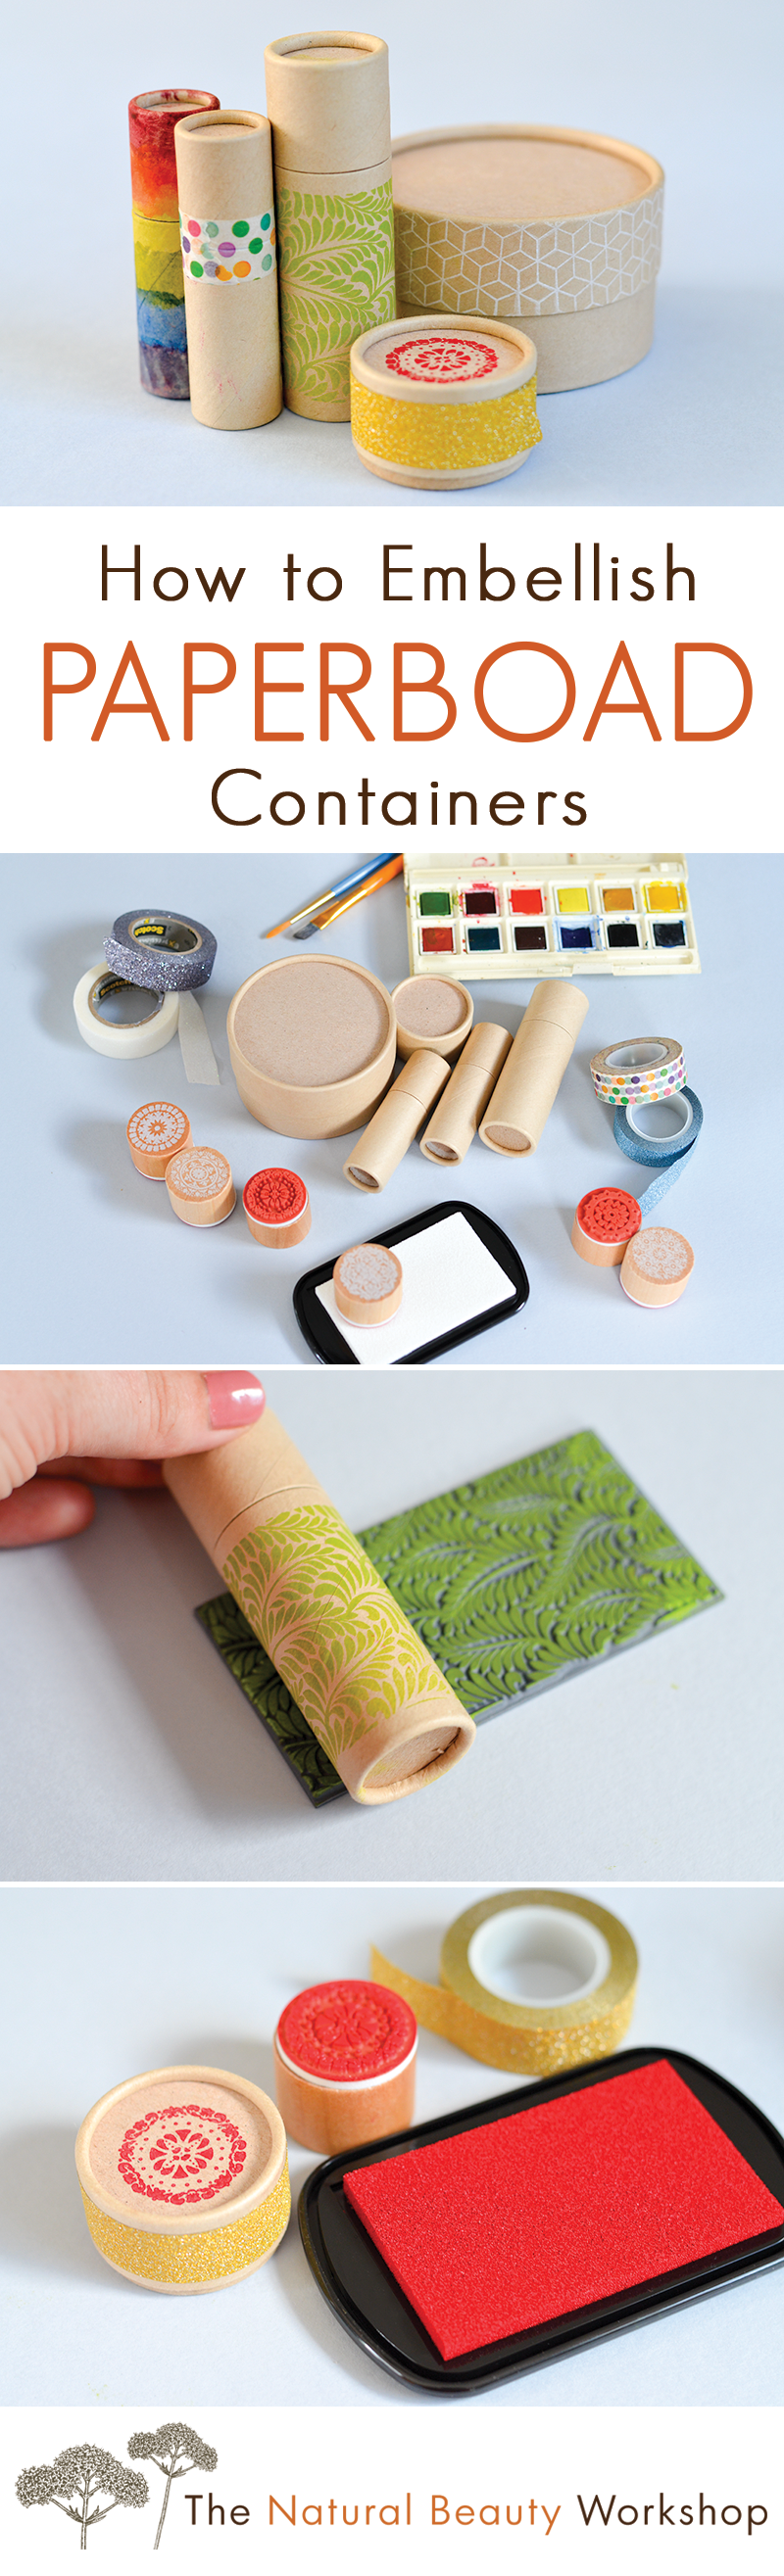 How to Embellish Paperboard Containers - Ideas and inspiration for adding handmade detail